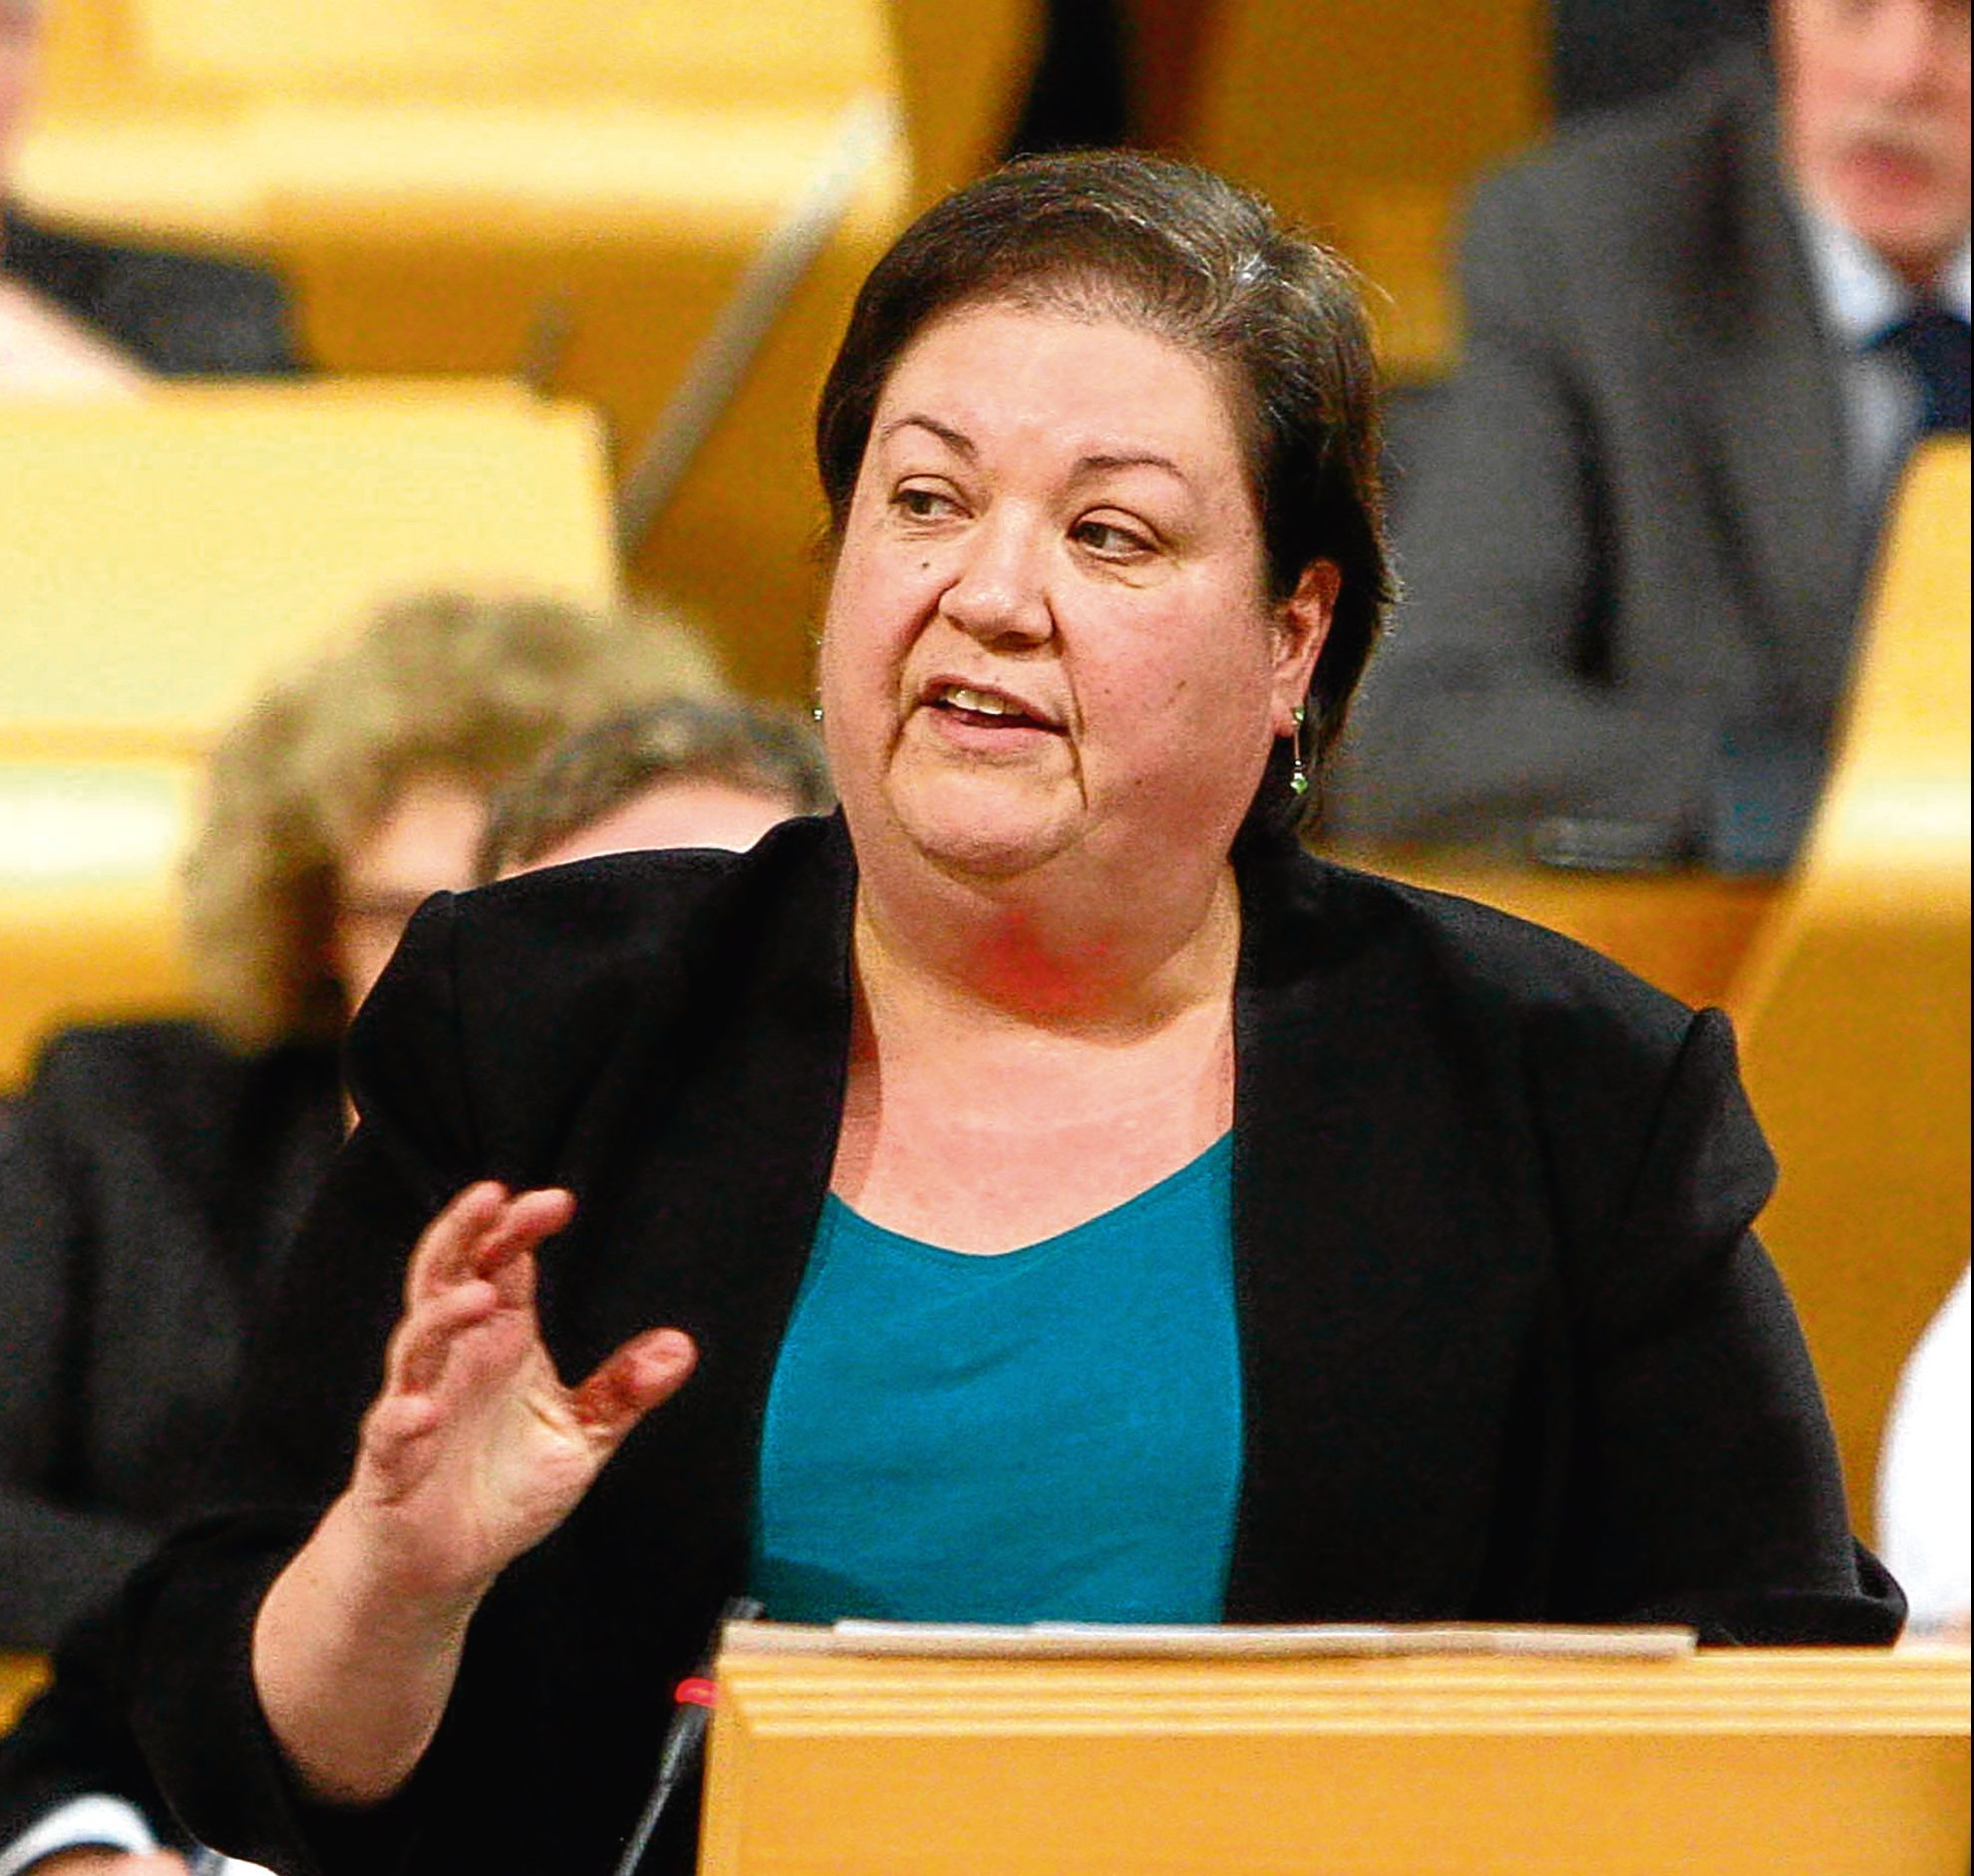 Jackie Baillie MSP (Andrew Cowan/Scottish Parliament)